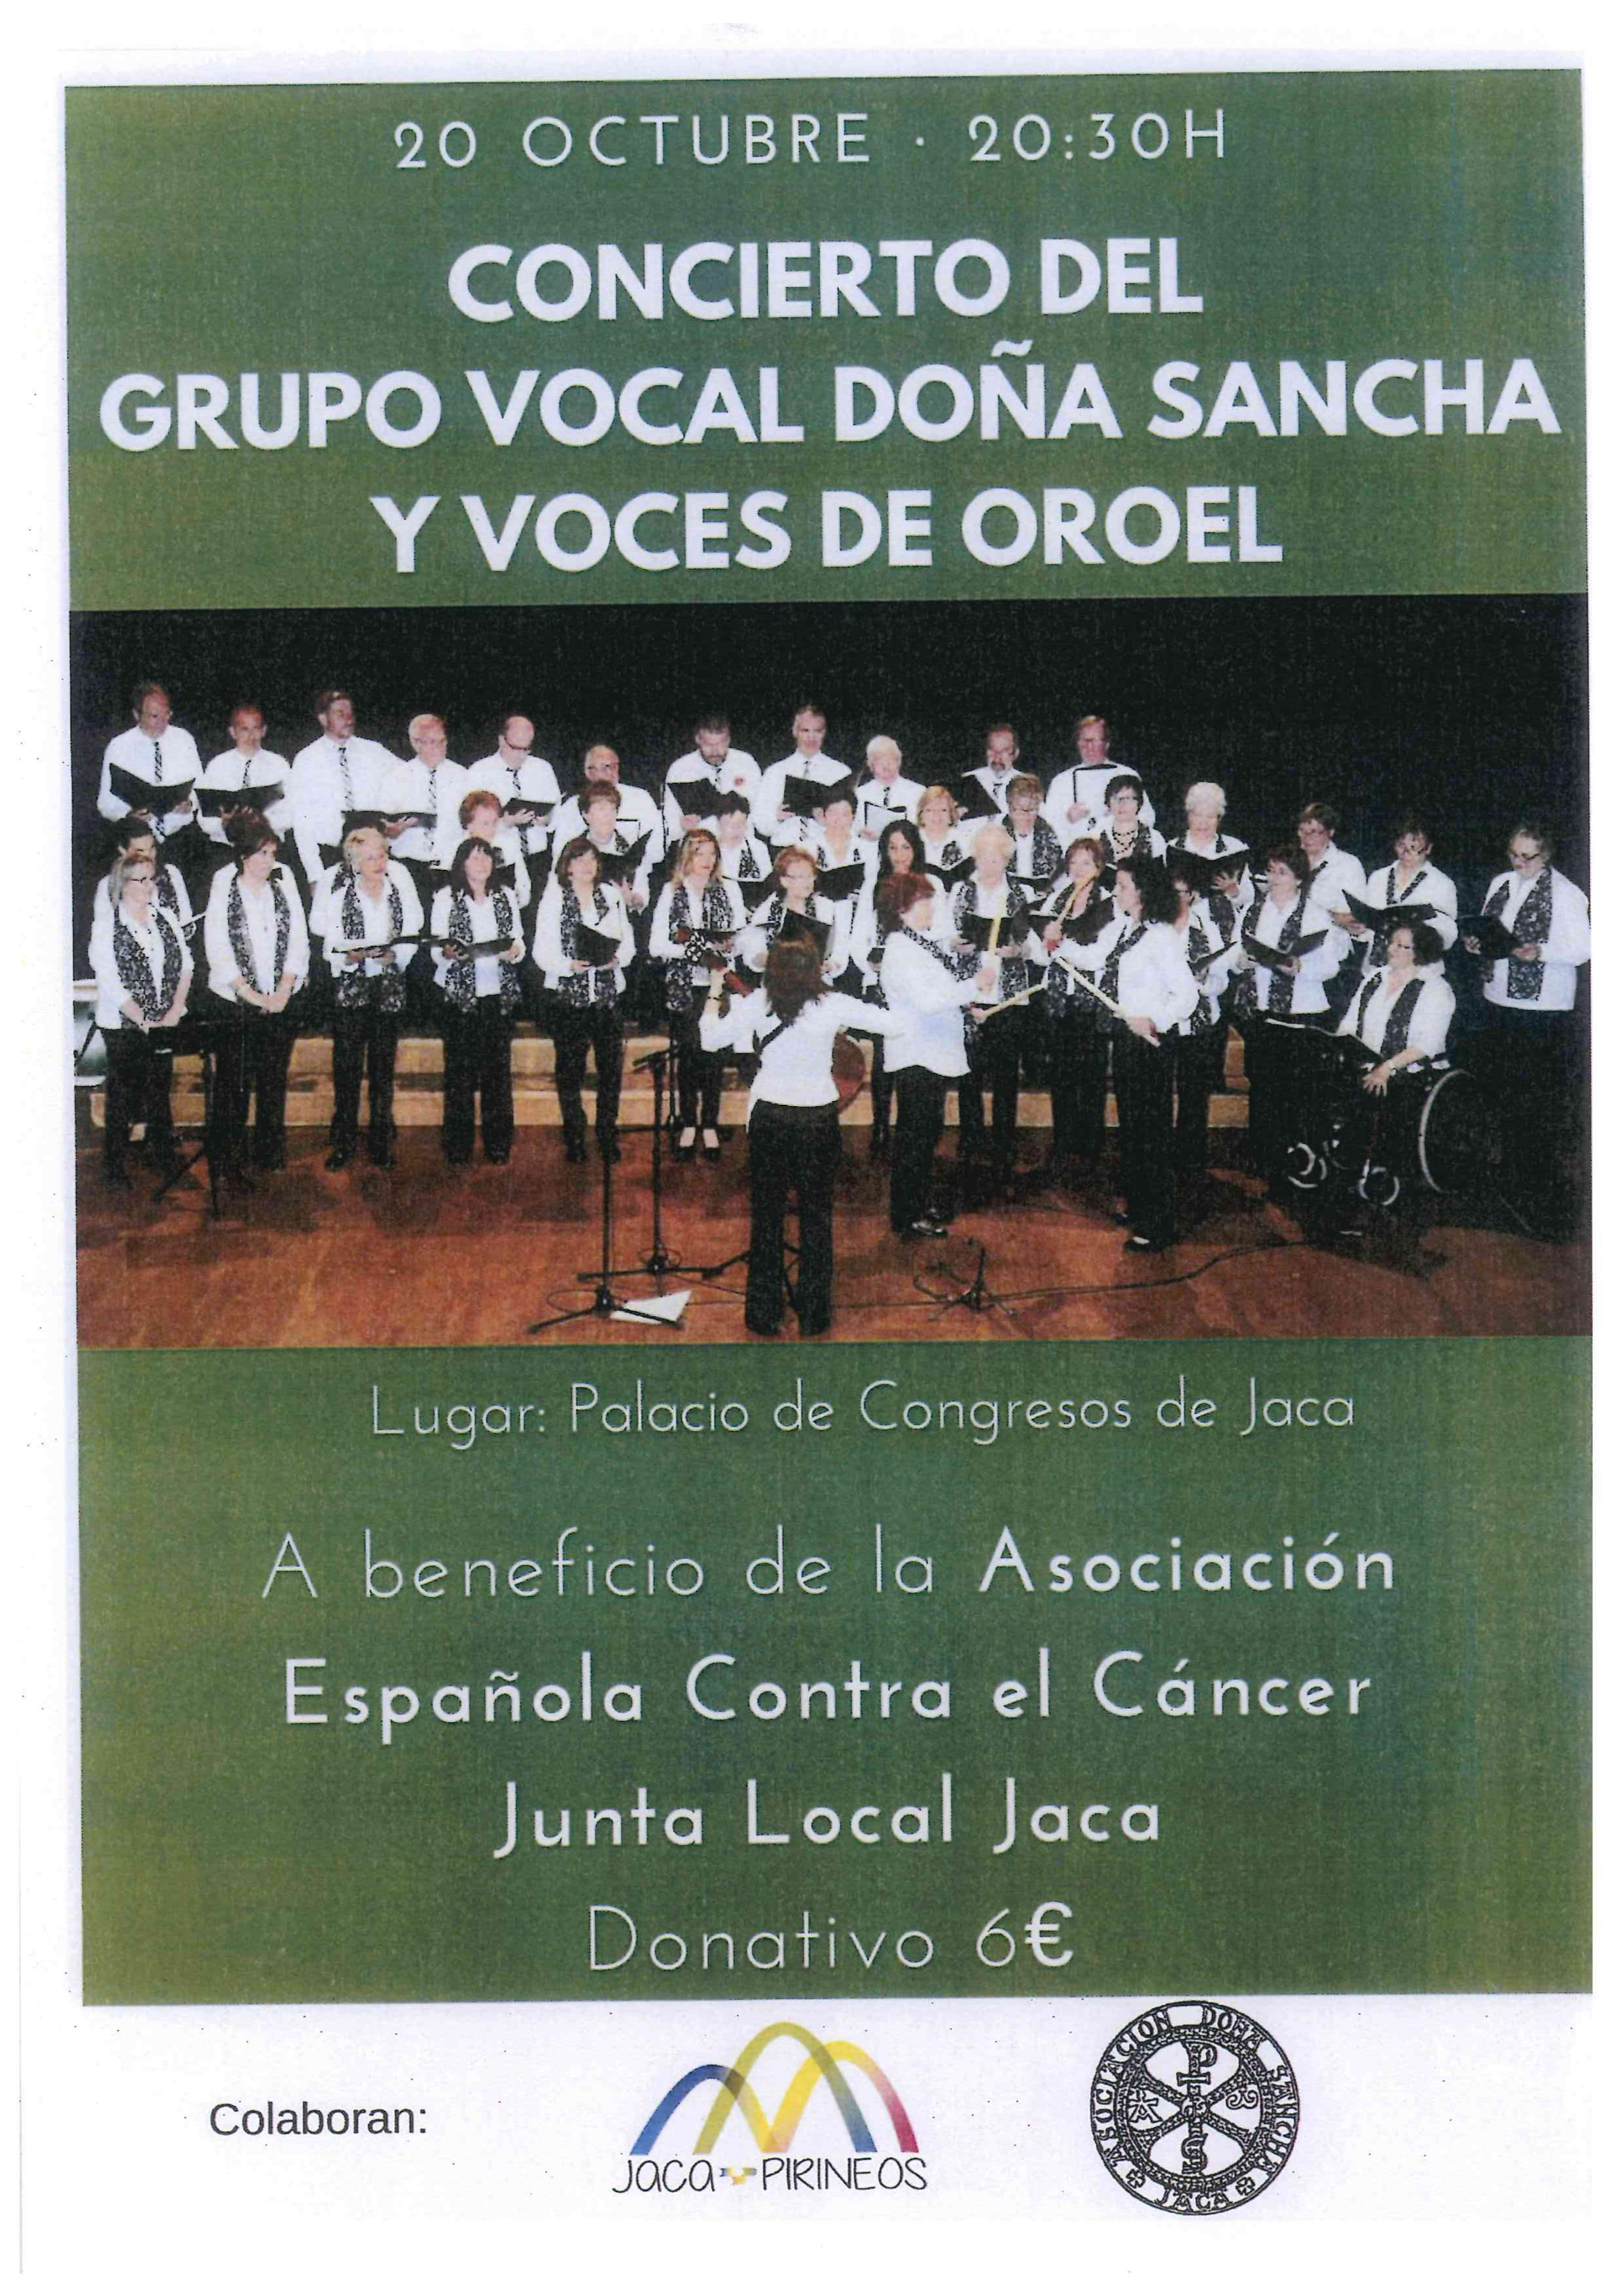 CONCIERTO DEL GRUPO VOCAL DOÑA SANCHA Y VOCES DE OROEL